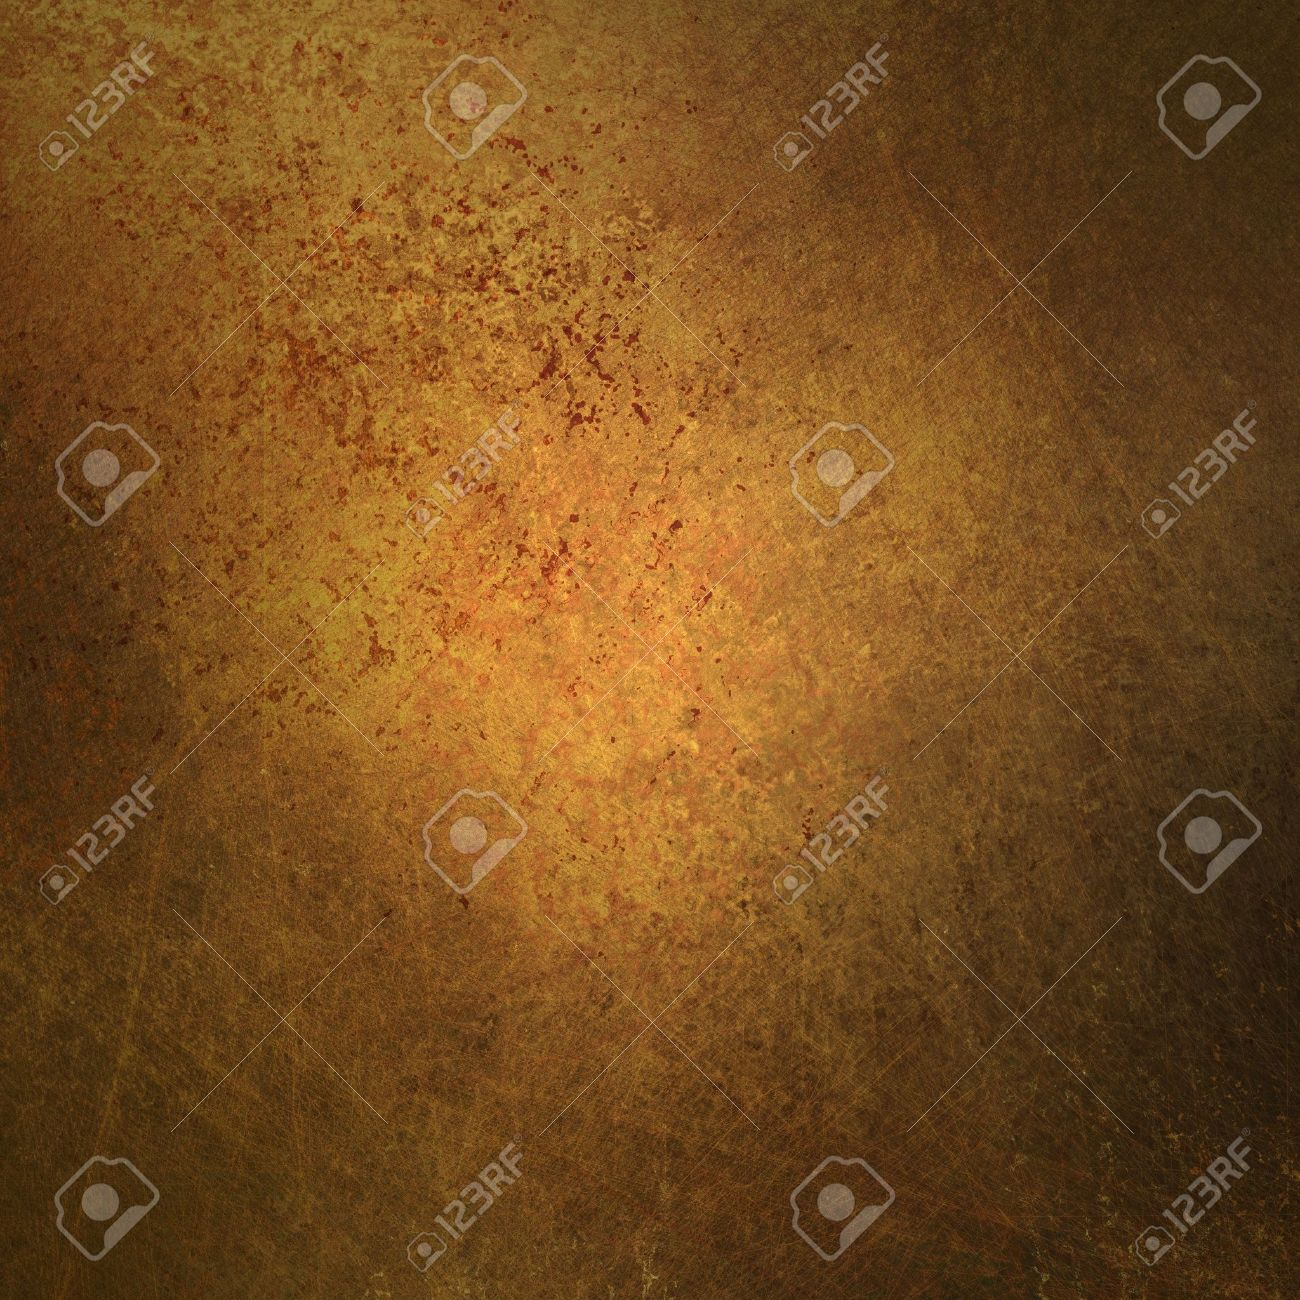 grungy brown gold background with abstract vintage grunge background texture sponged and distressed for worn old faded background paper or parchment, use for retro brochure ad or antique web template Stock Photo - 15139298